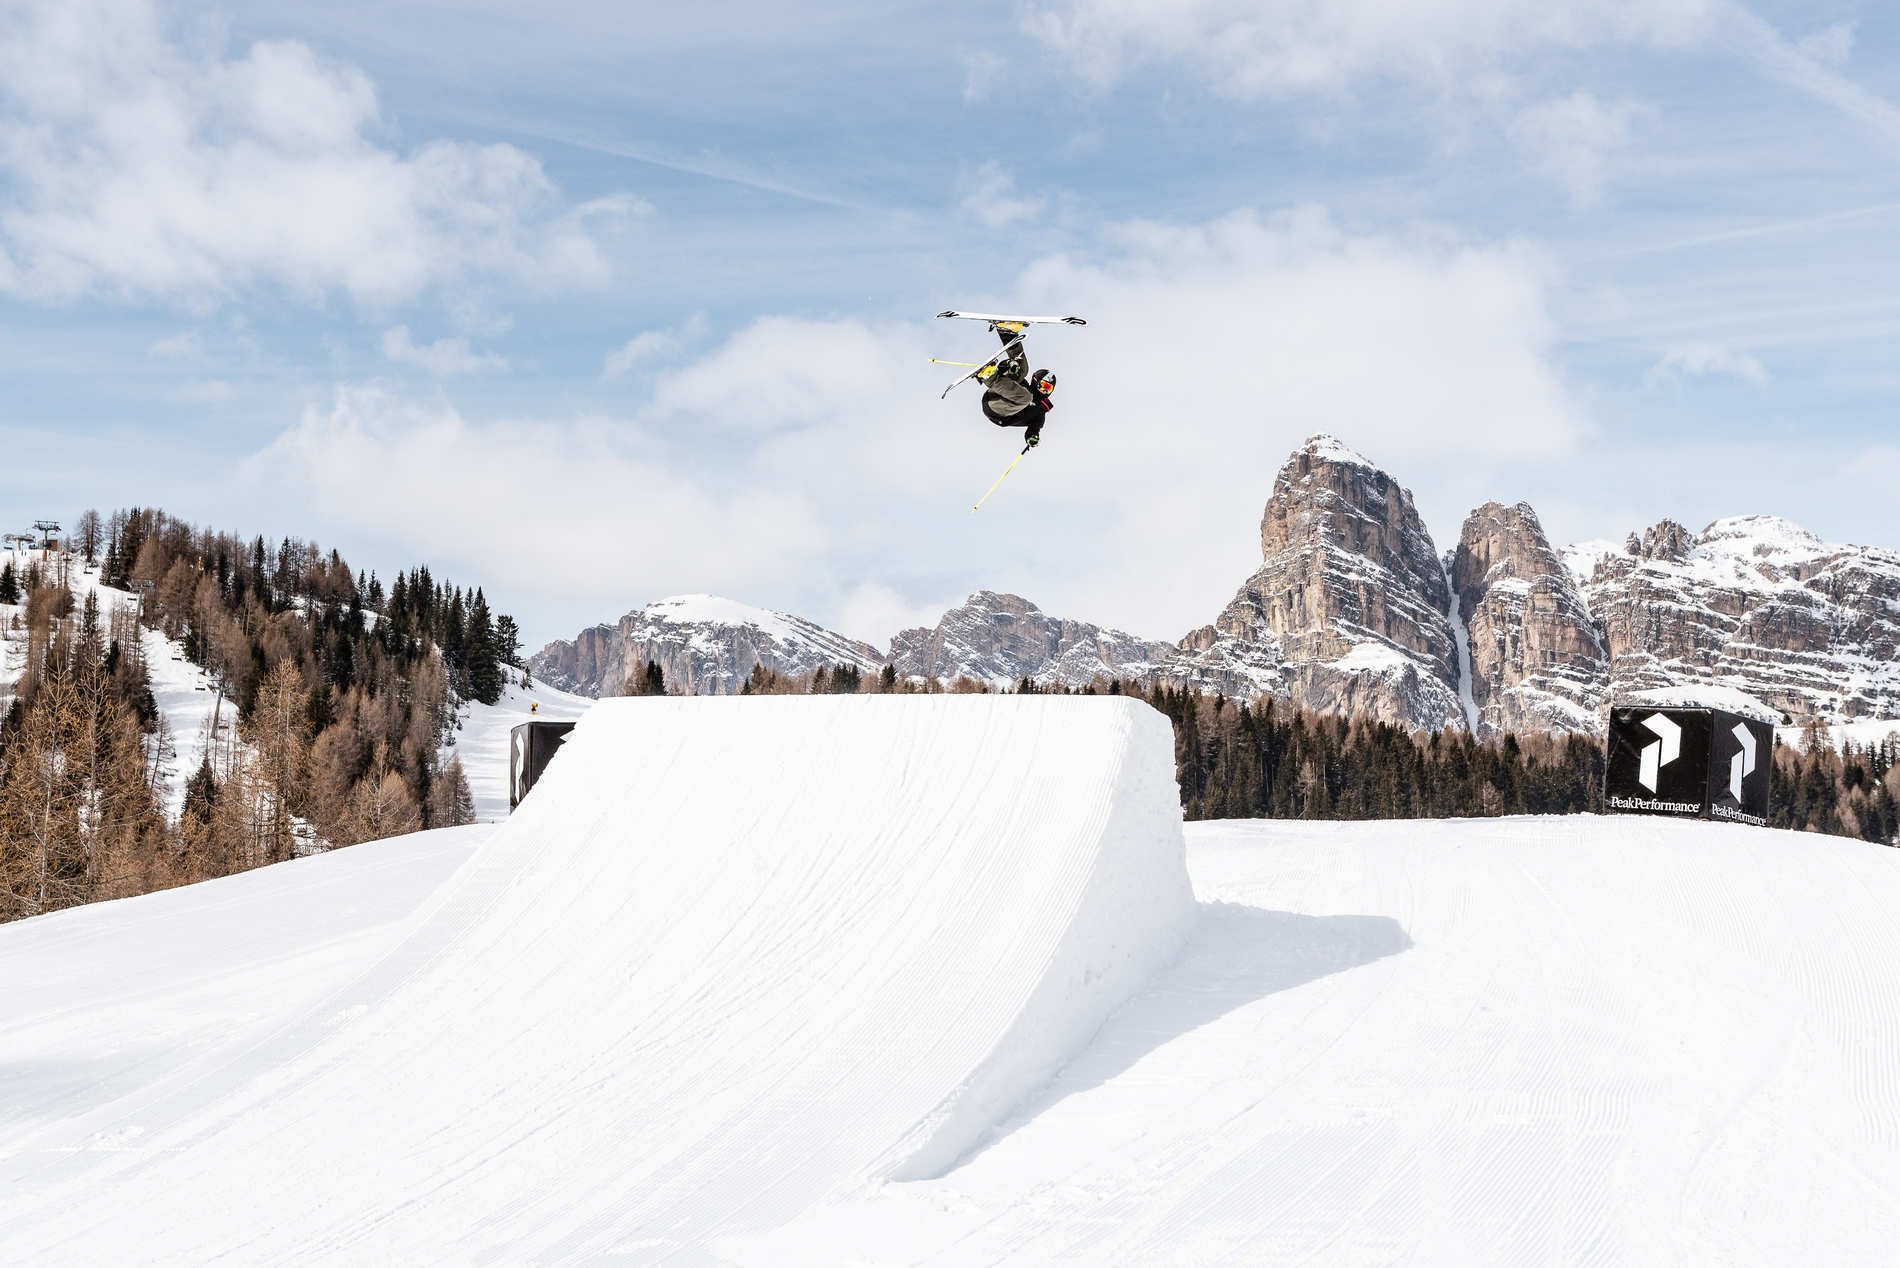 web alta badia 09 03 2019 action fs unknown rider christian riefenberg qparks 14